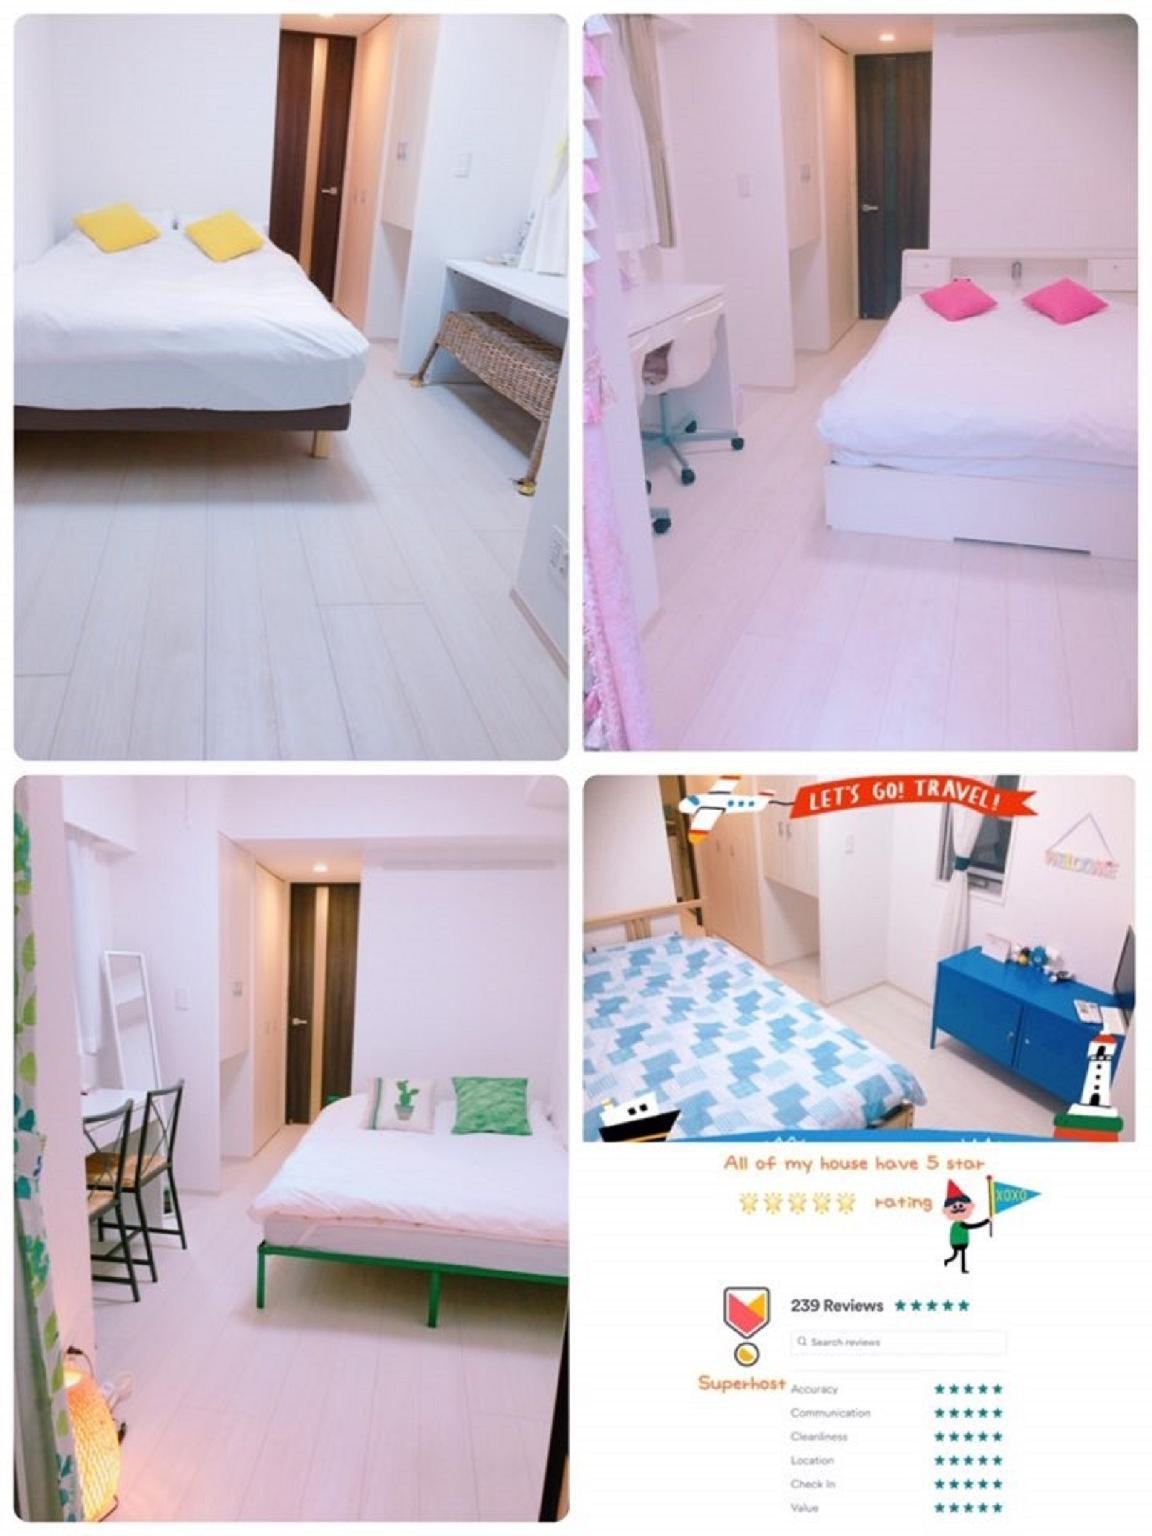 1. Lovely Stay Yuni + Free 2wifi  House And Pocket